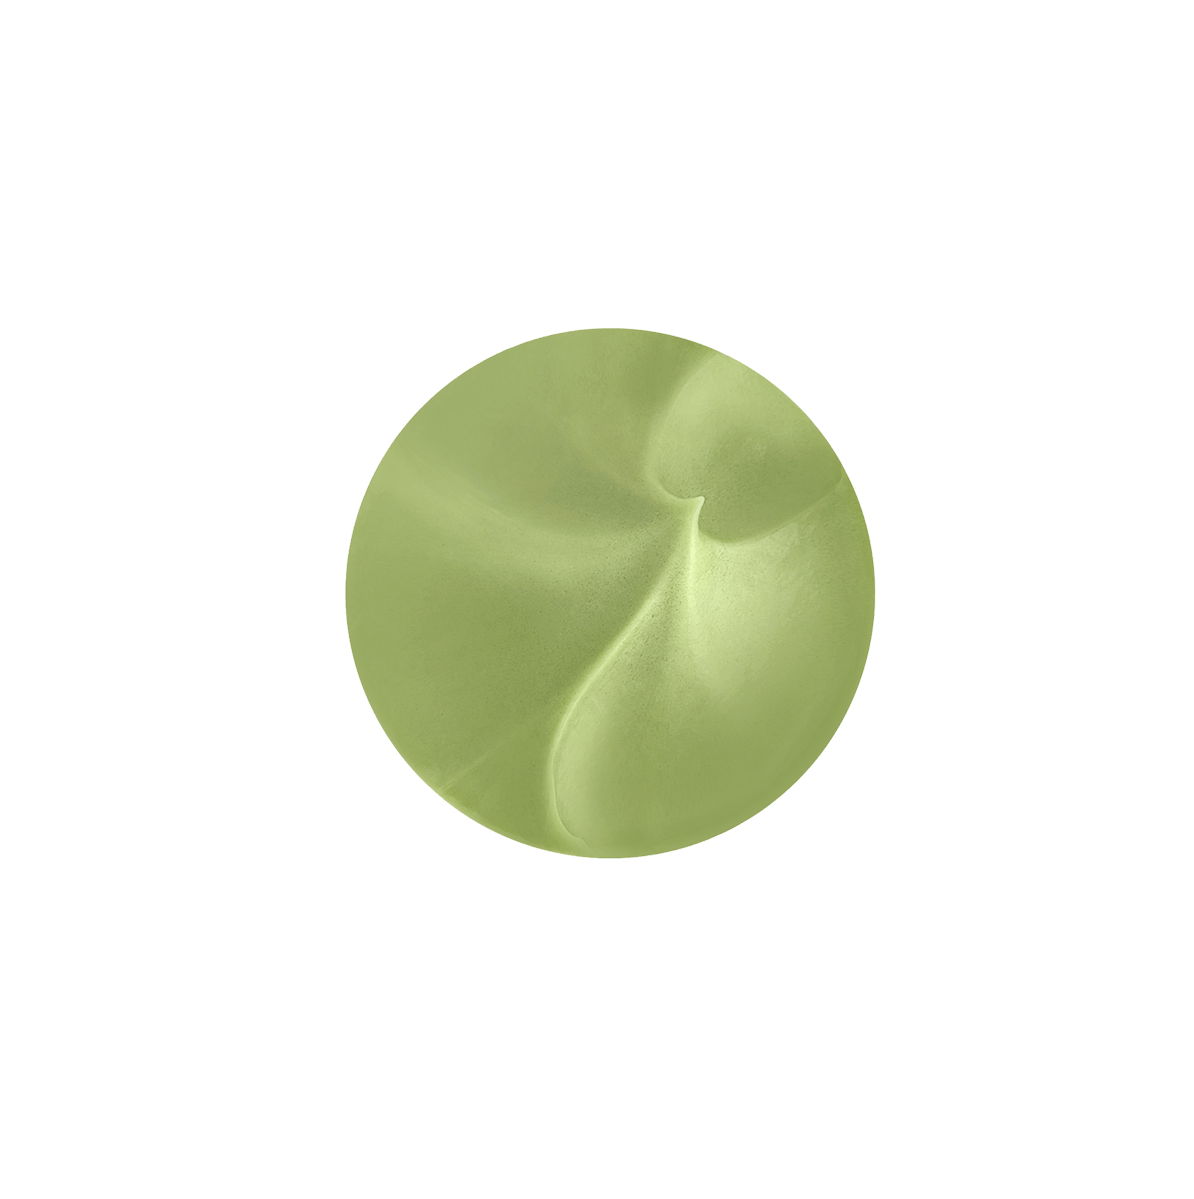 collab-fundamental-hydrating-primer-swatch.png